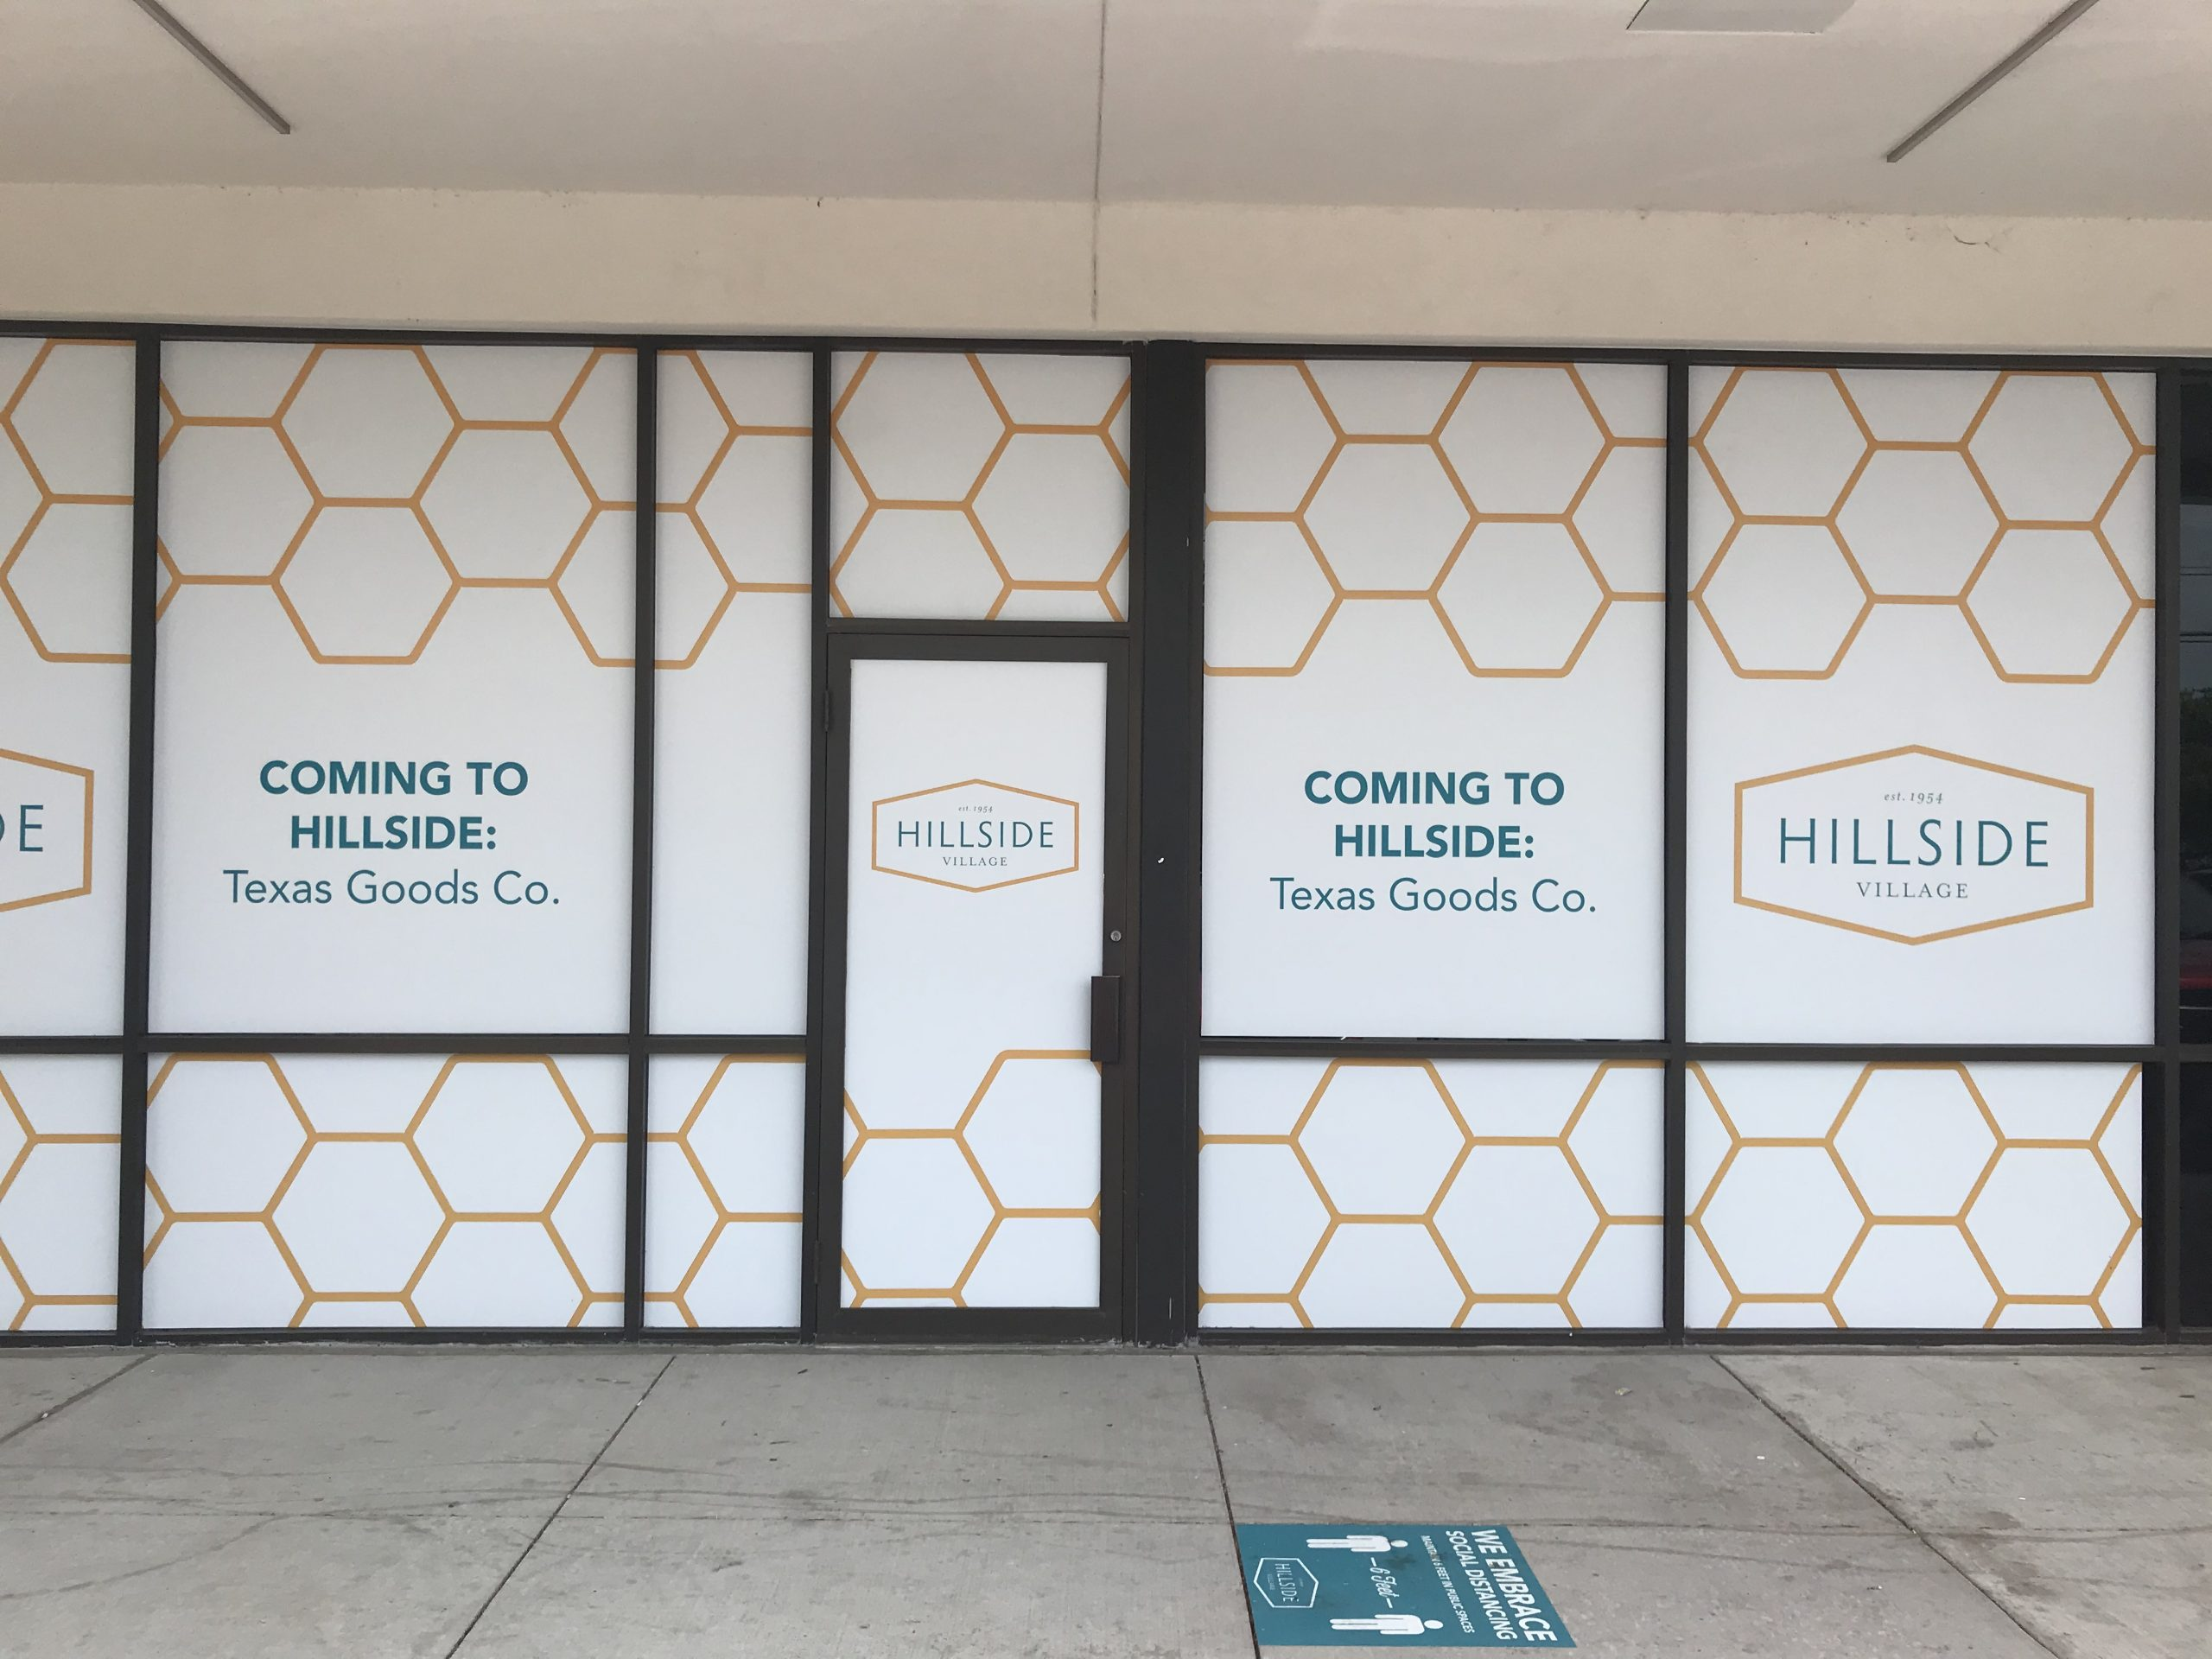 Lakewood Ny Christmas In The Village 2020 Texas Goods Co. Announces Opening Date For Lakewood Location